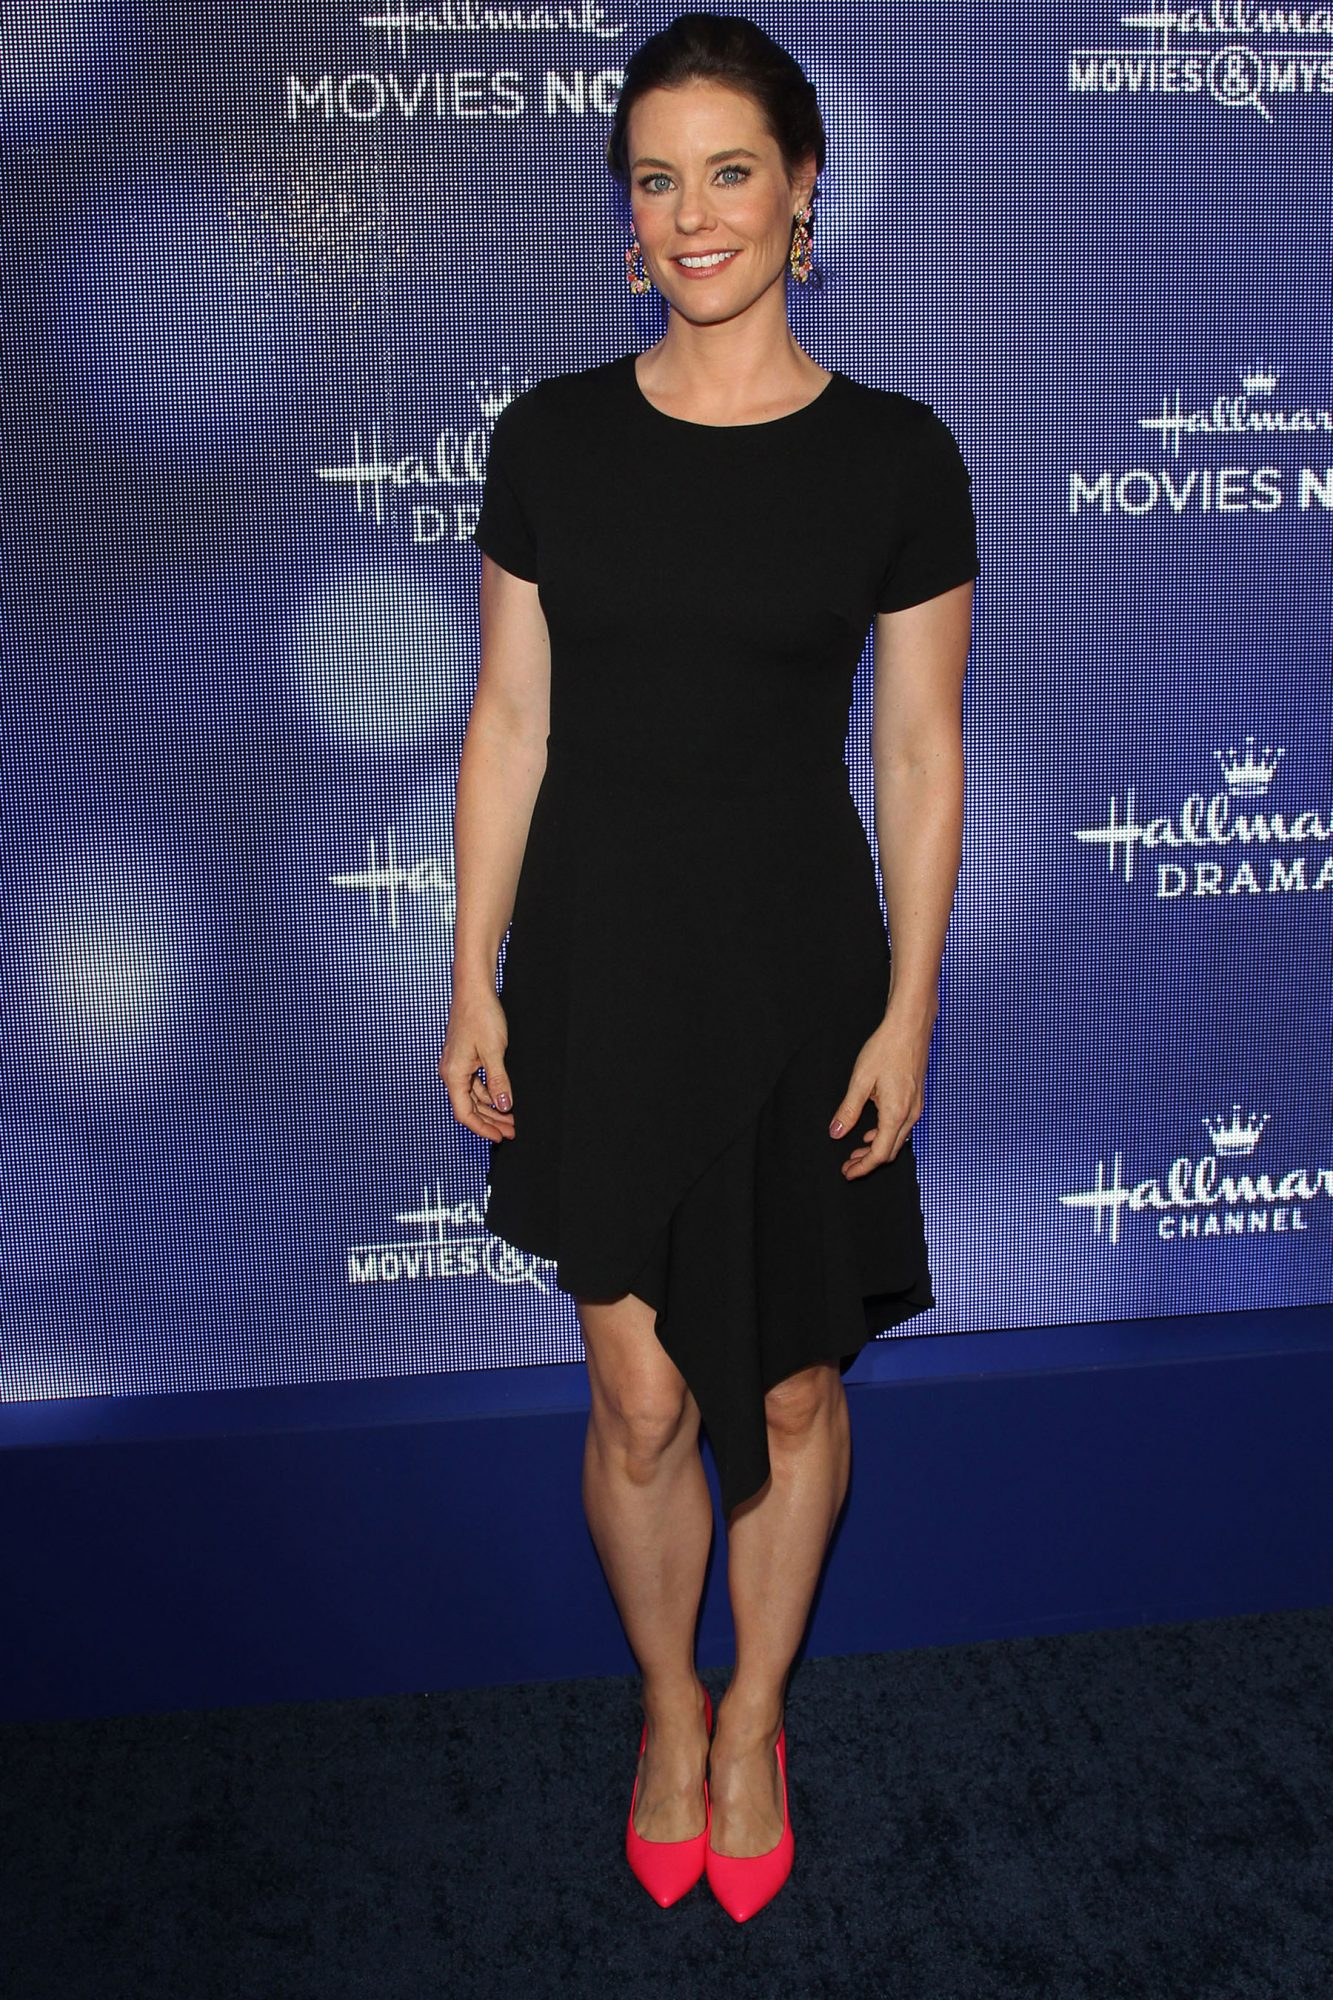 Hallmark Channel And Hallmark Movies and Mysteries Summer 2019 TCA Press Tour Event